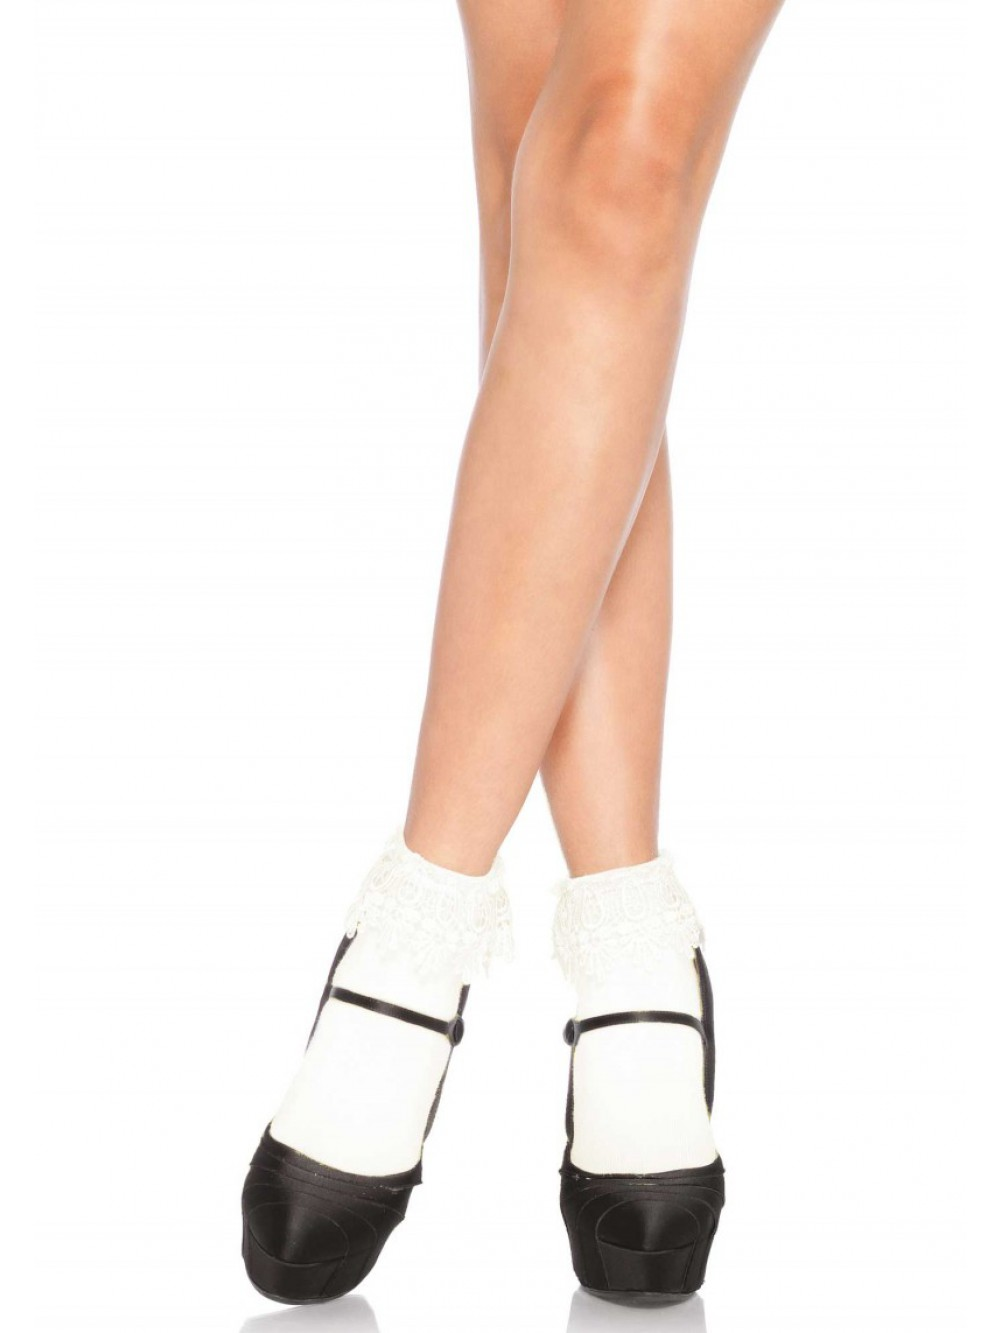 ANKLE HIGHS WITH LACE TOP IVORY 0714718503547